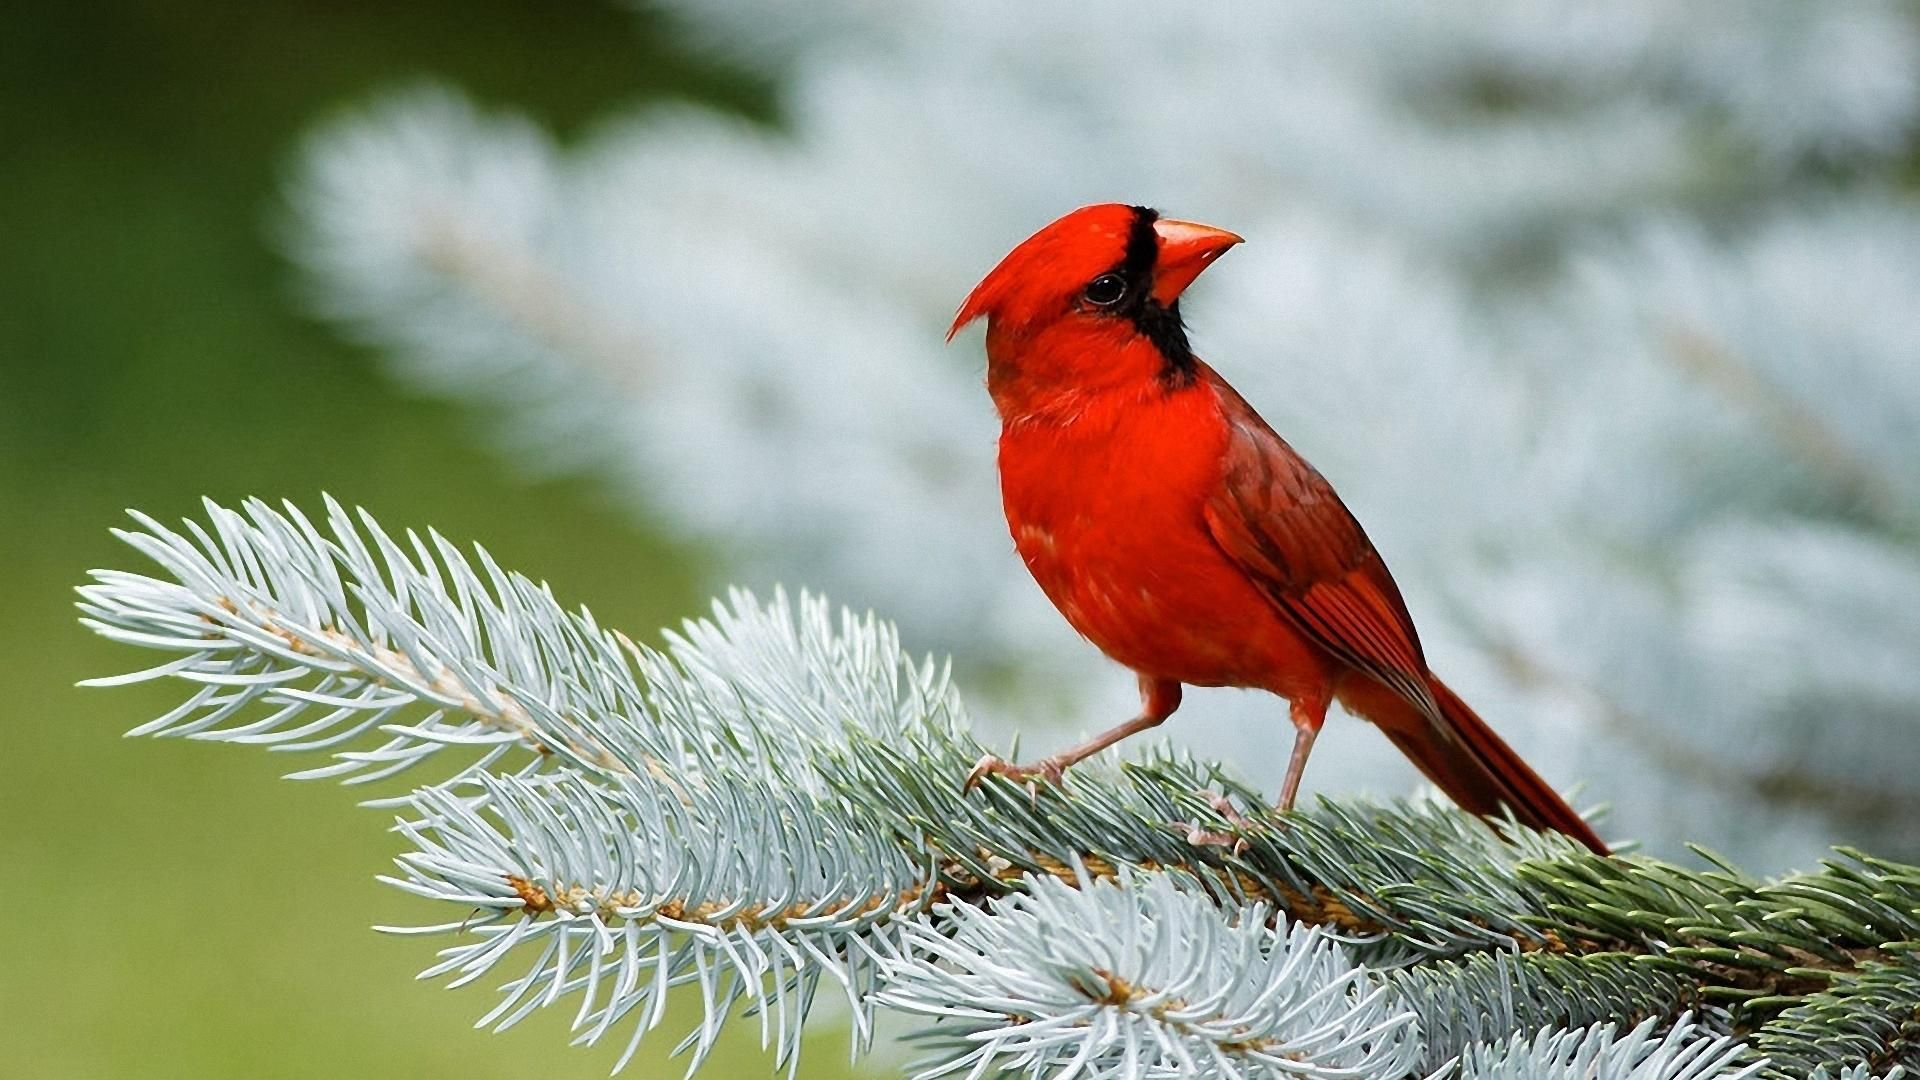 red cardinal birds 1080p hd wallpaper 1920x1080